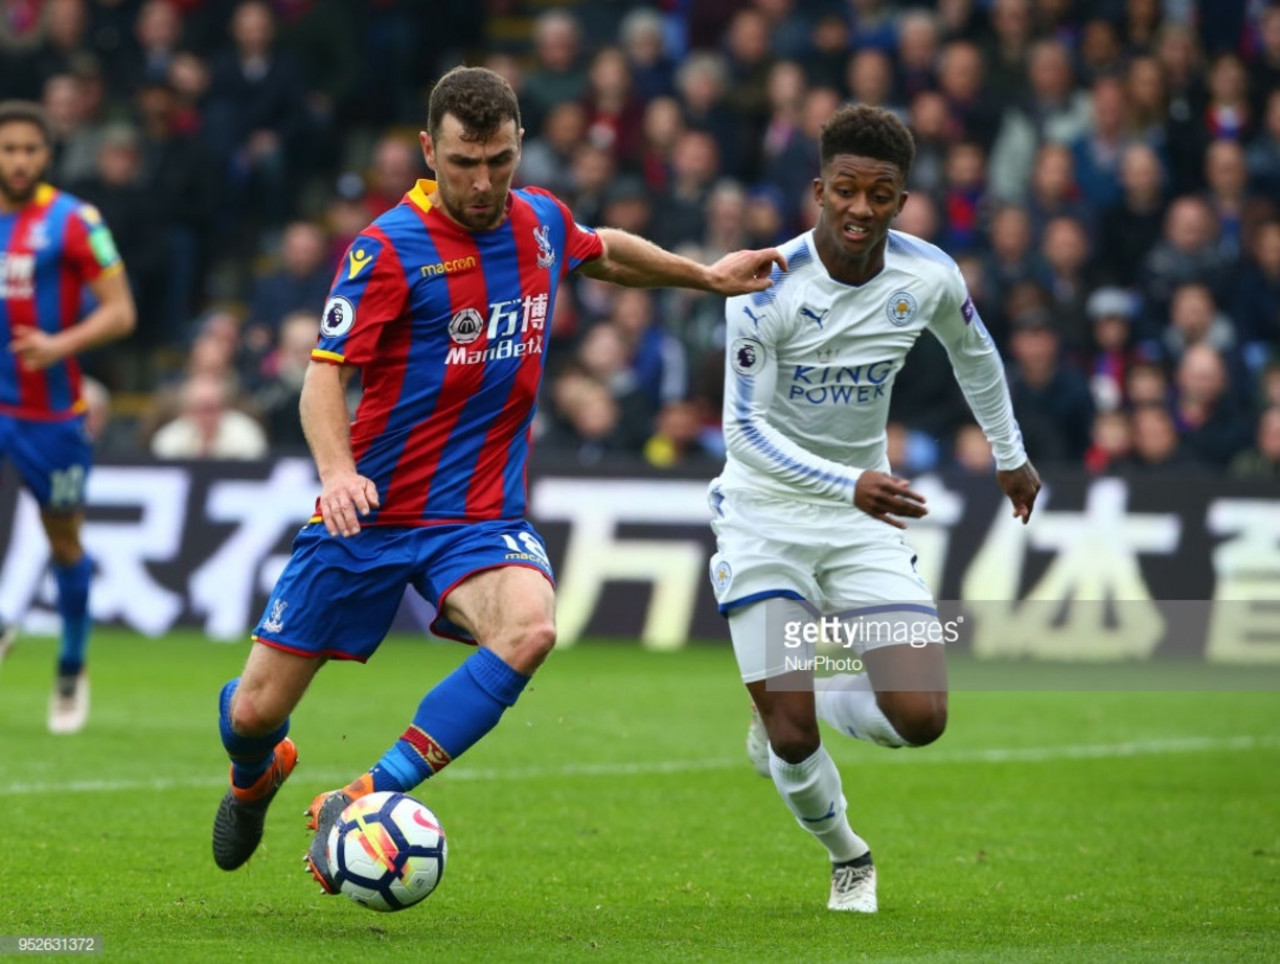 Crystal Palace vs Leicester City Preview: Foxes look to return to winning ways